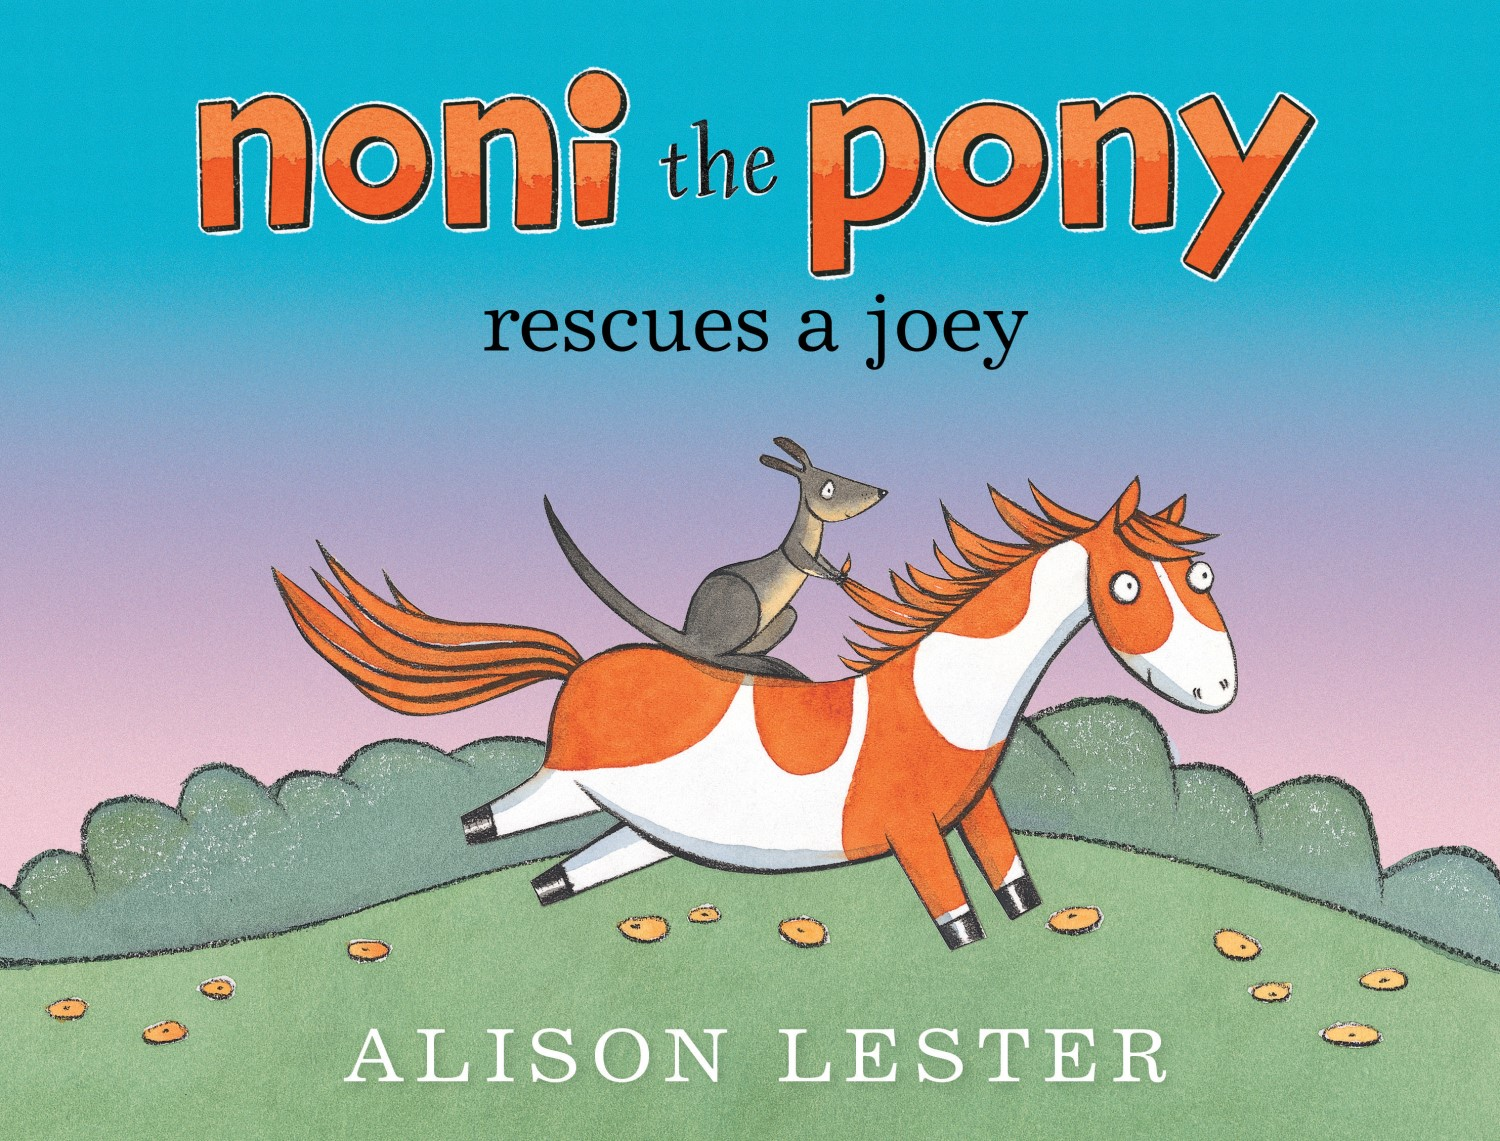 Noni Pony rescues a Joey